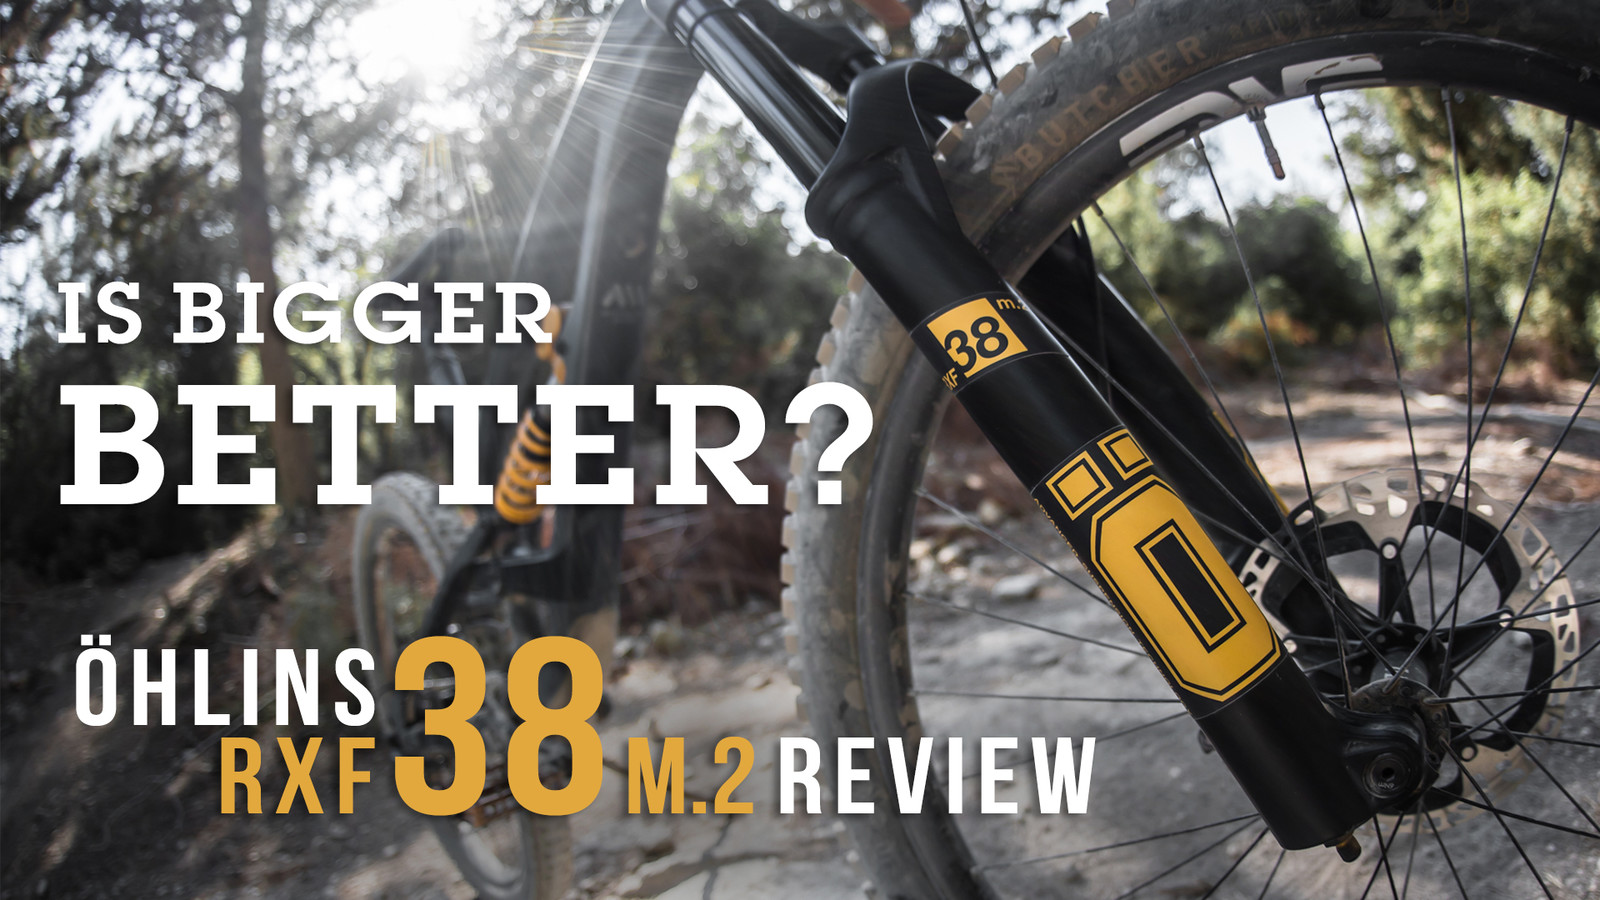 Is Bigger Better? All-New Öhlins RXF 38 m.2 Reviewed